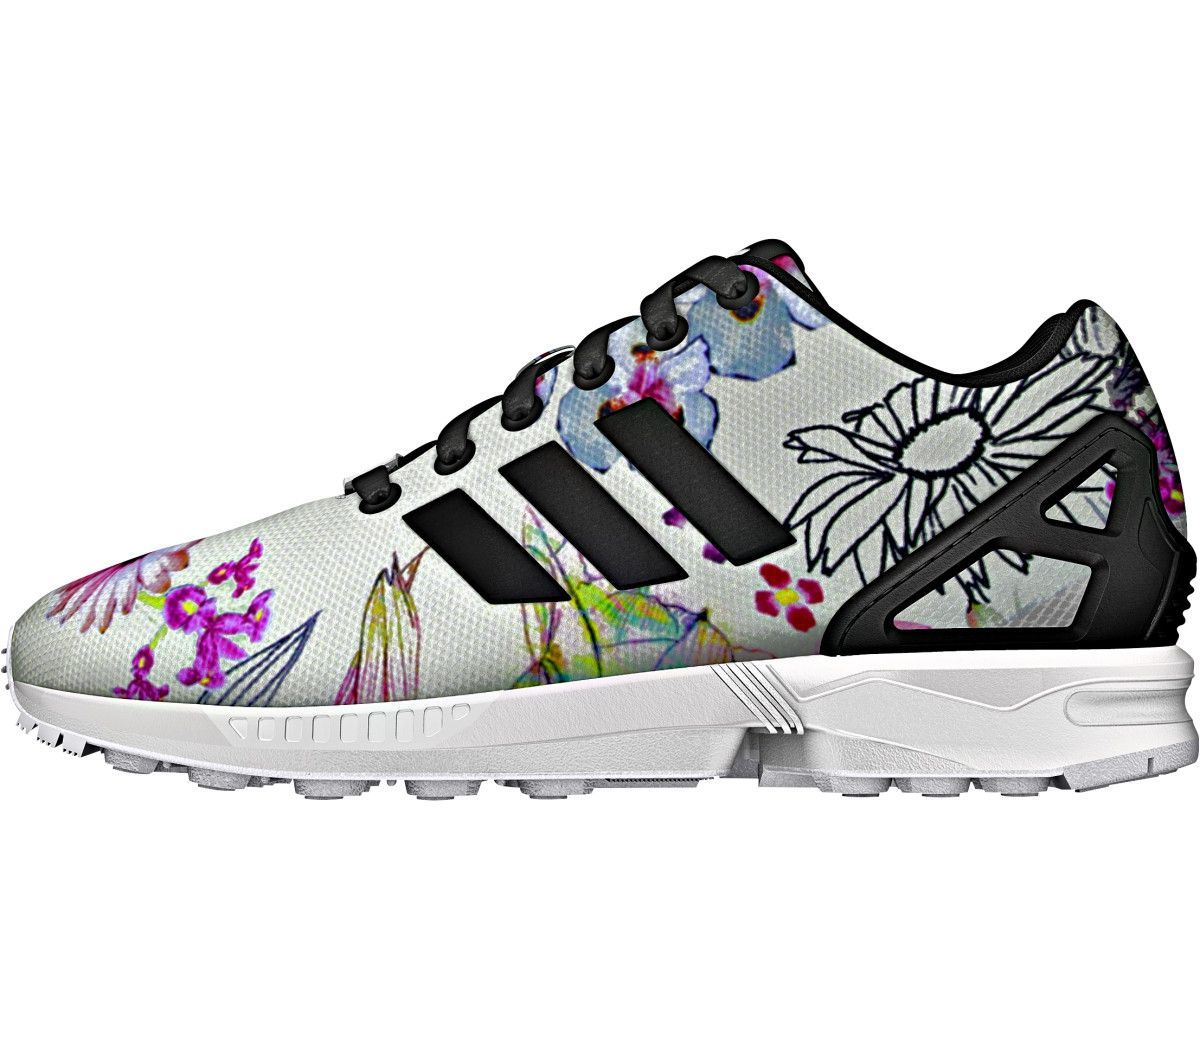 ZX Flux Shoes The updated lines of an iconic running shoe mix with a floral print inspired by Brazil. With ZX Flux, the graphic possibilities are endless. Designed in collaboration with Brazil's The F